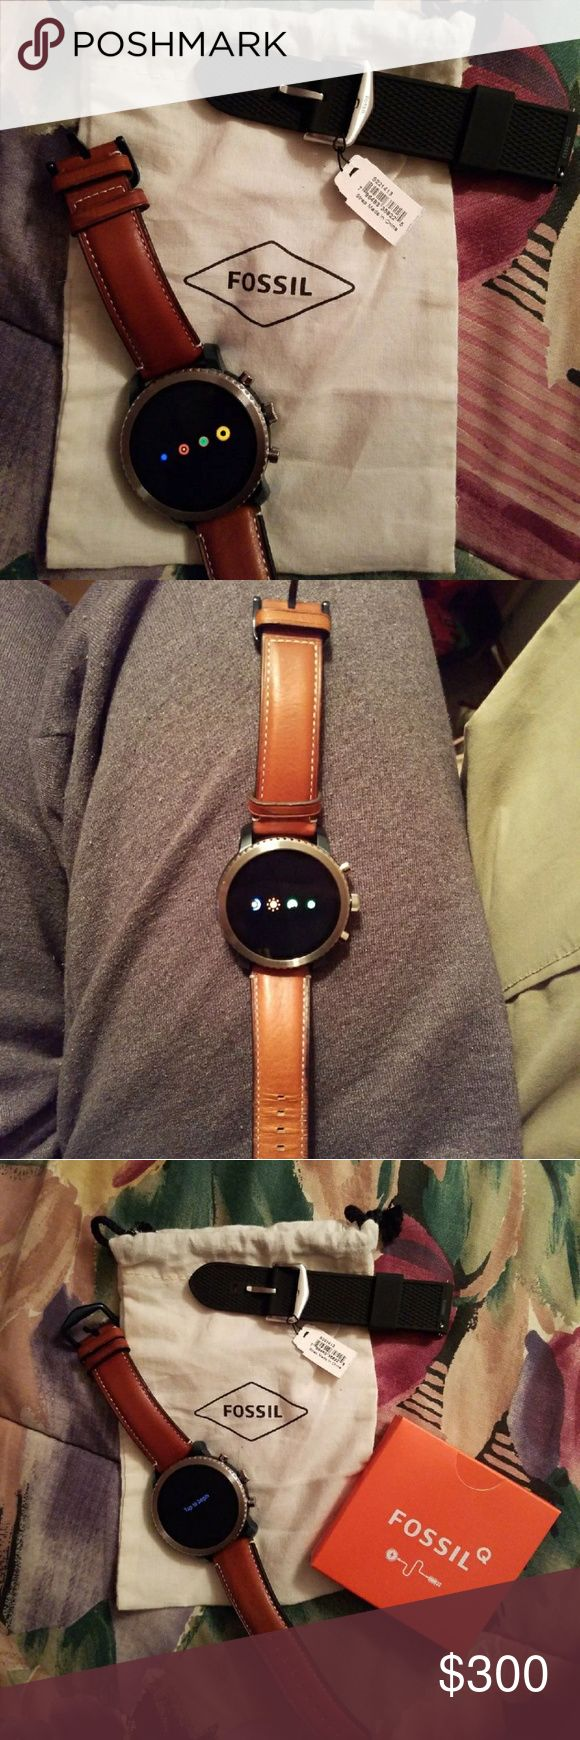 Fossil Q smartwatch Mens or Womens FossilQ smartwatch. Includes: watch face, 2 sets of wrist straps, and charger. IPhone and Android compatible. Only ever worn for the pictures.  New without tags. NEGOTIABLE!!! Fossil Accessories Watches